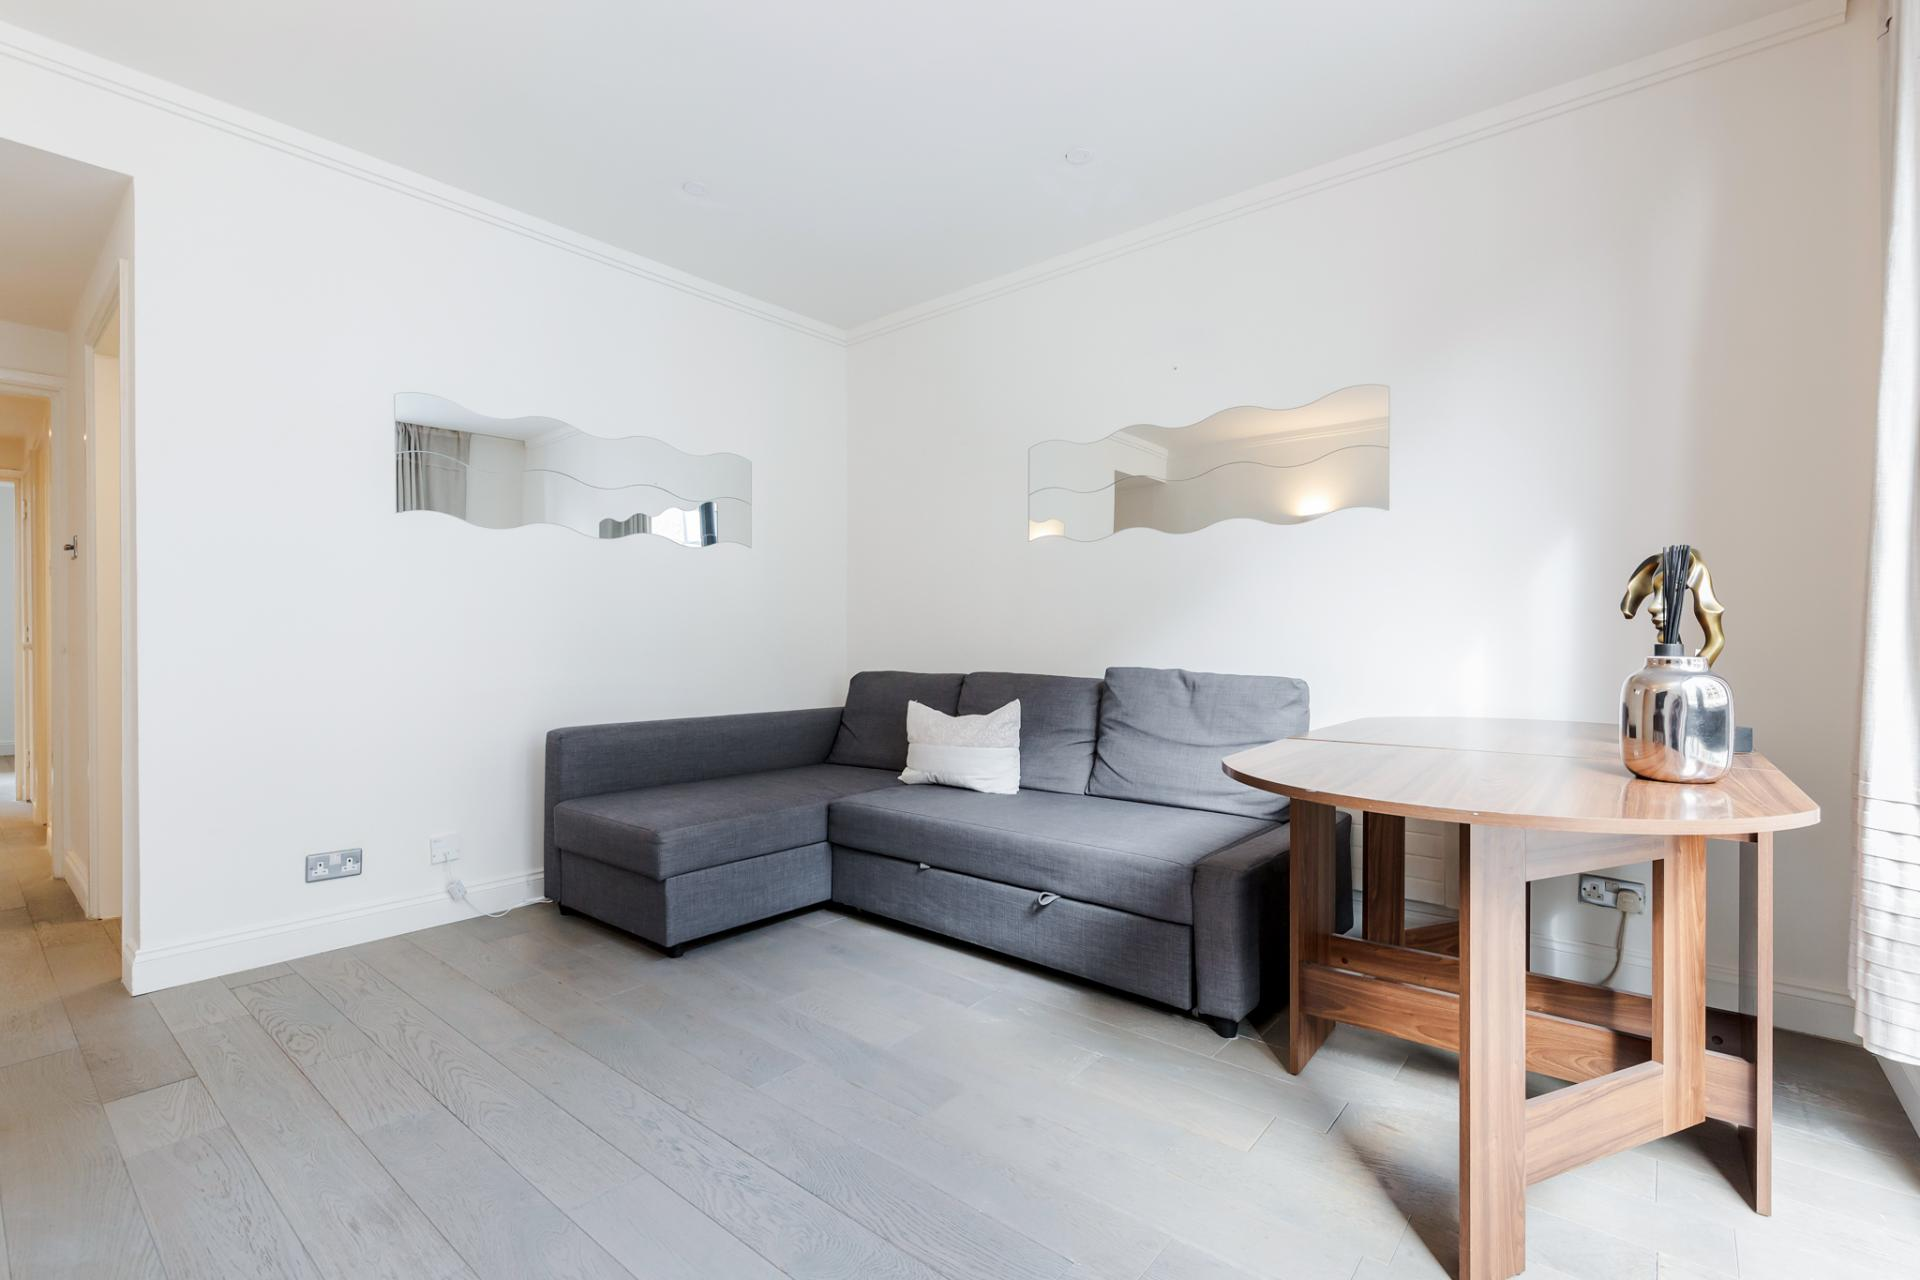 Sofa at Earls Court Serviced Apartment, Kensington, London - Citybase Apartments